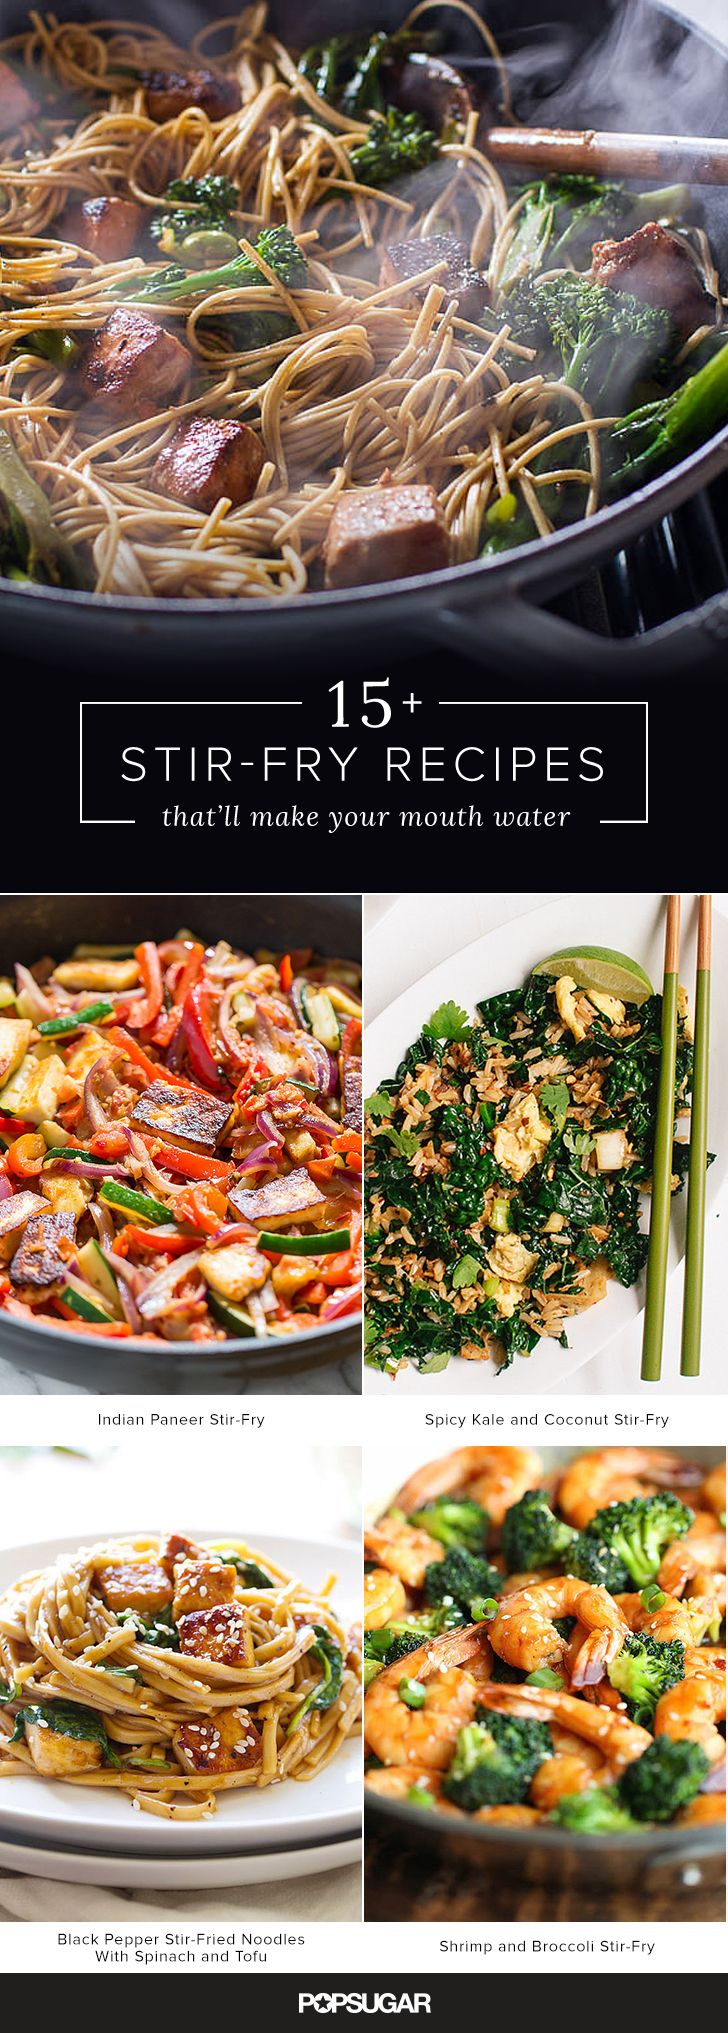 Not only are stir-frys speedy dishes to prepare, but they're also a great choice as the technique itself is quite flexible and a great way to use up the bits and bobs of produce and proteins stashed in your fridge. Check out these 19 recipes for inspiration, cook from them in order to master this essential technique, and then get to making stir-fry creations of your own.